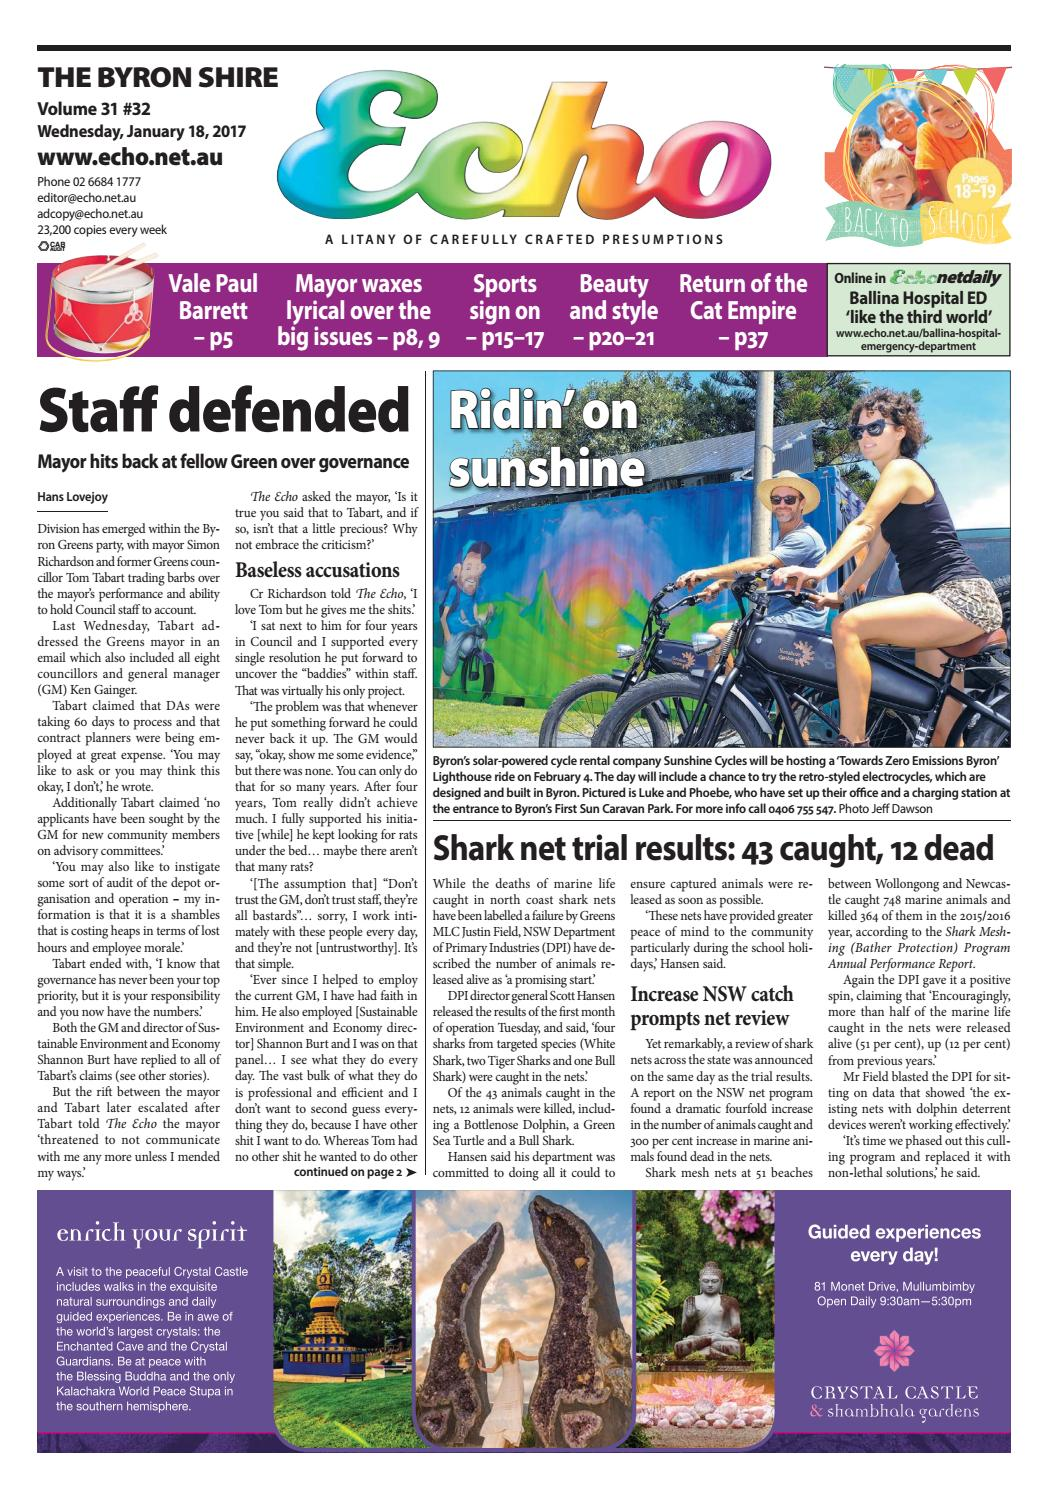 05462135182 Byron Shire Echo – Issue 31.32 – 18 01 2017 by Echo Publications - issuu